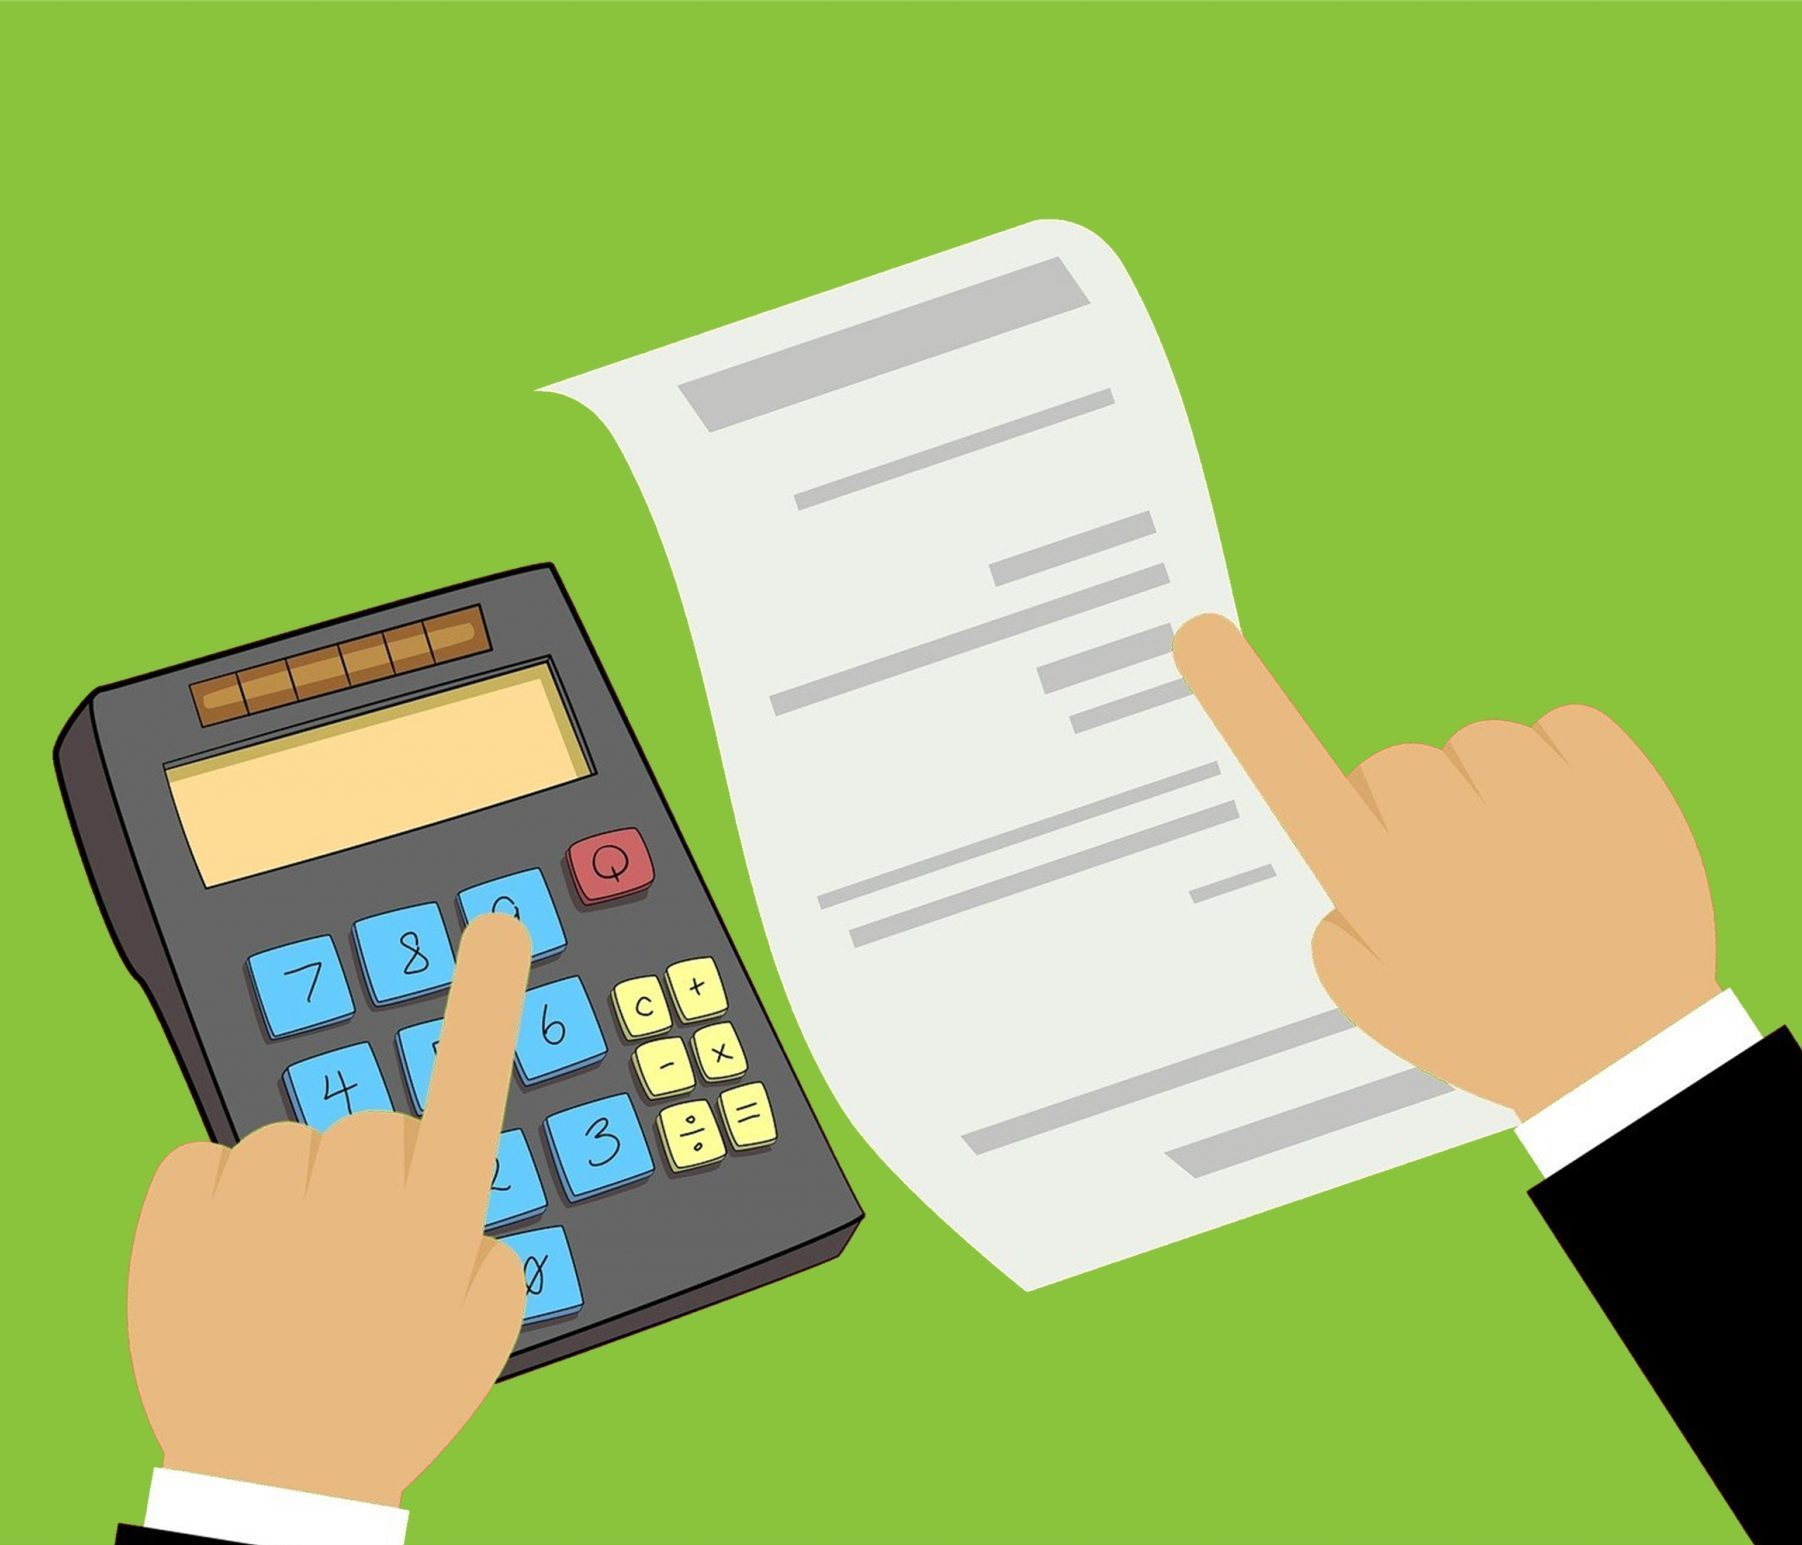 Illustration of one hand typing numbers into calculator and other hand pointing at written document or estimate to prepare quote